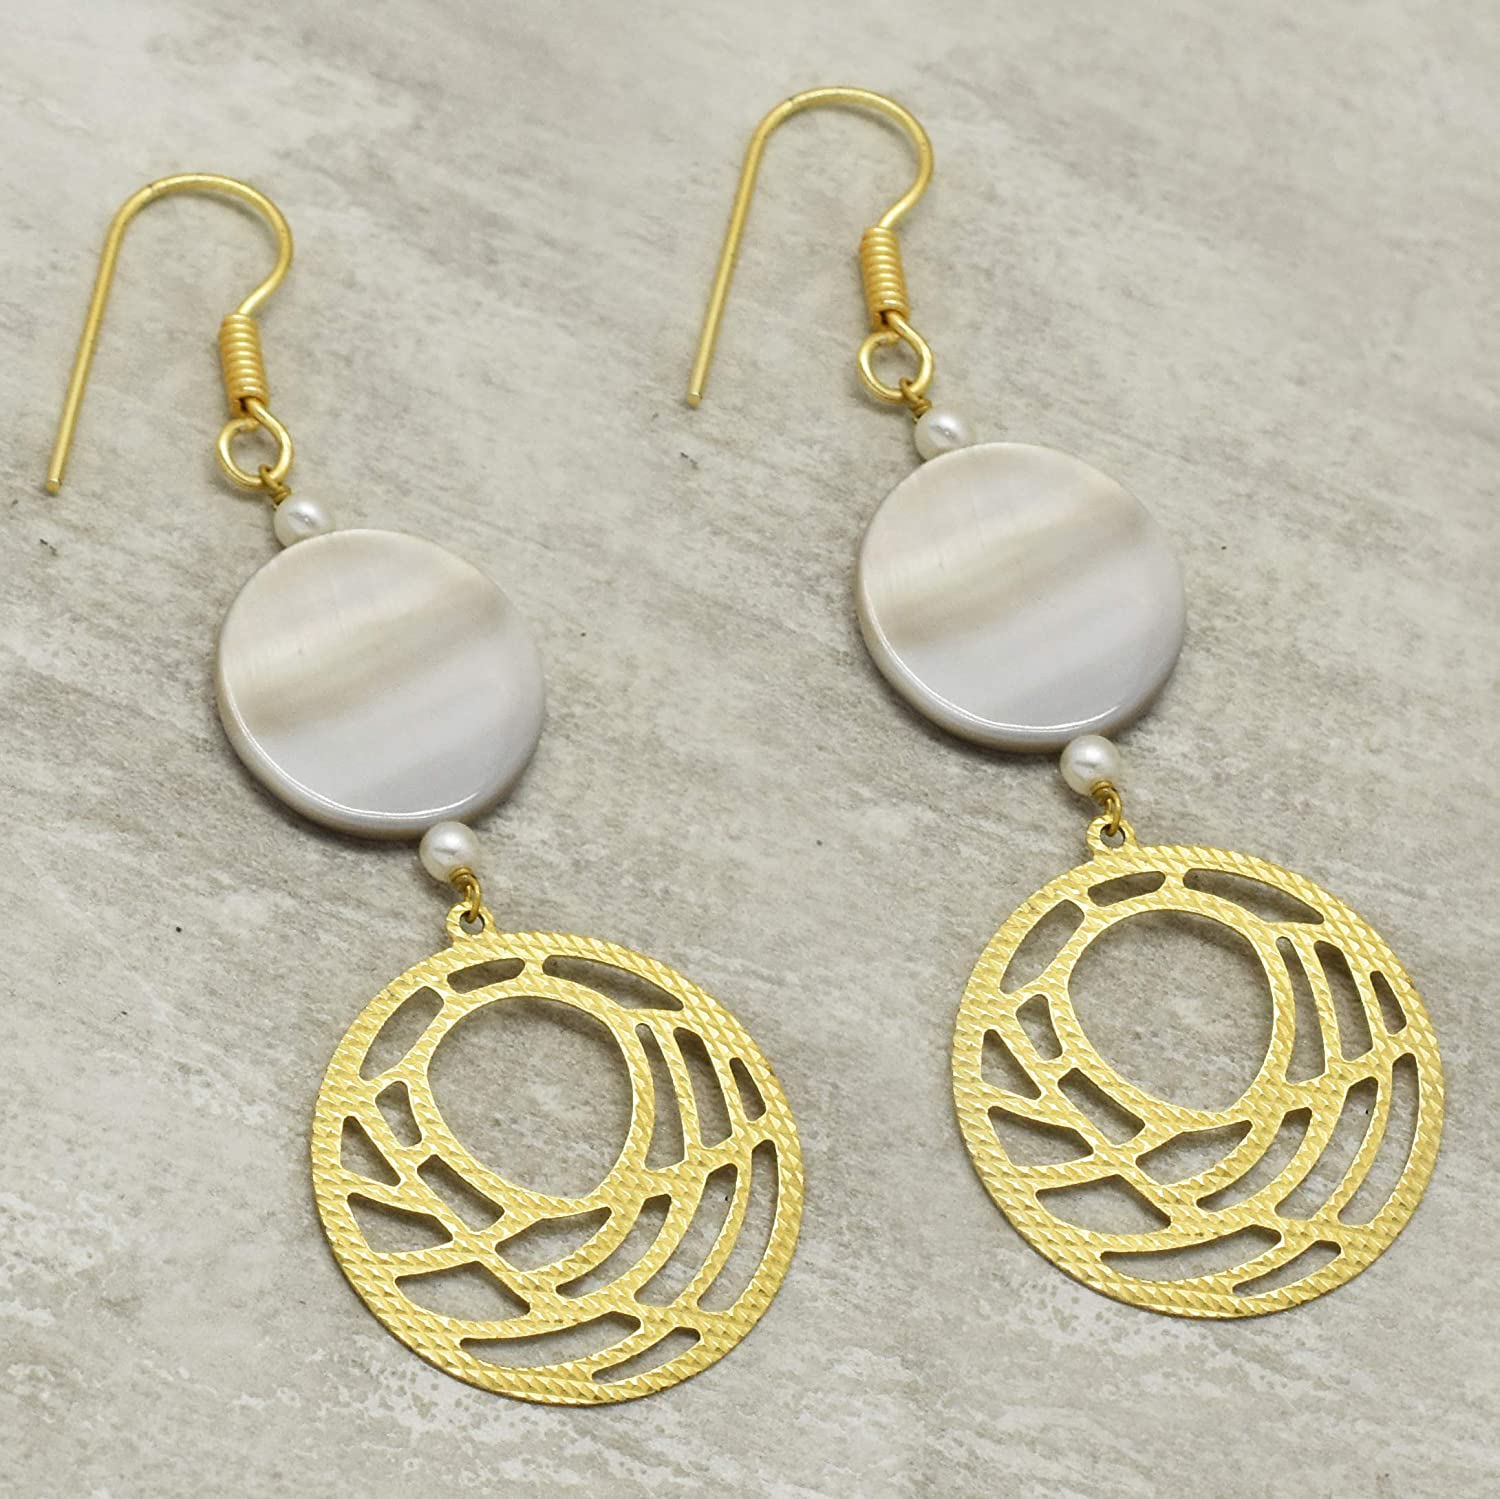 The V Collection earrings yellow gold plated agate,pearl round shape dangling earrings for women /& girls